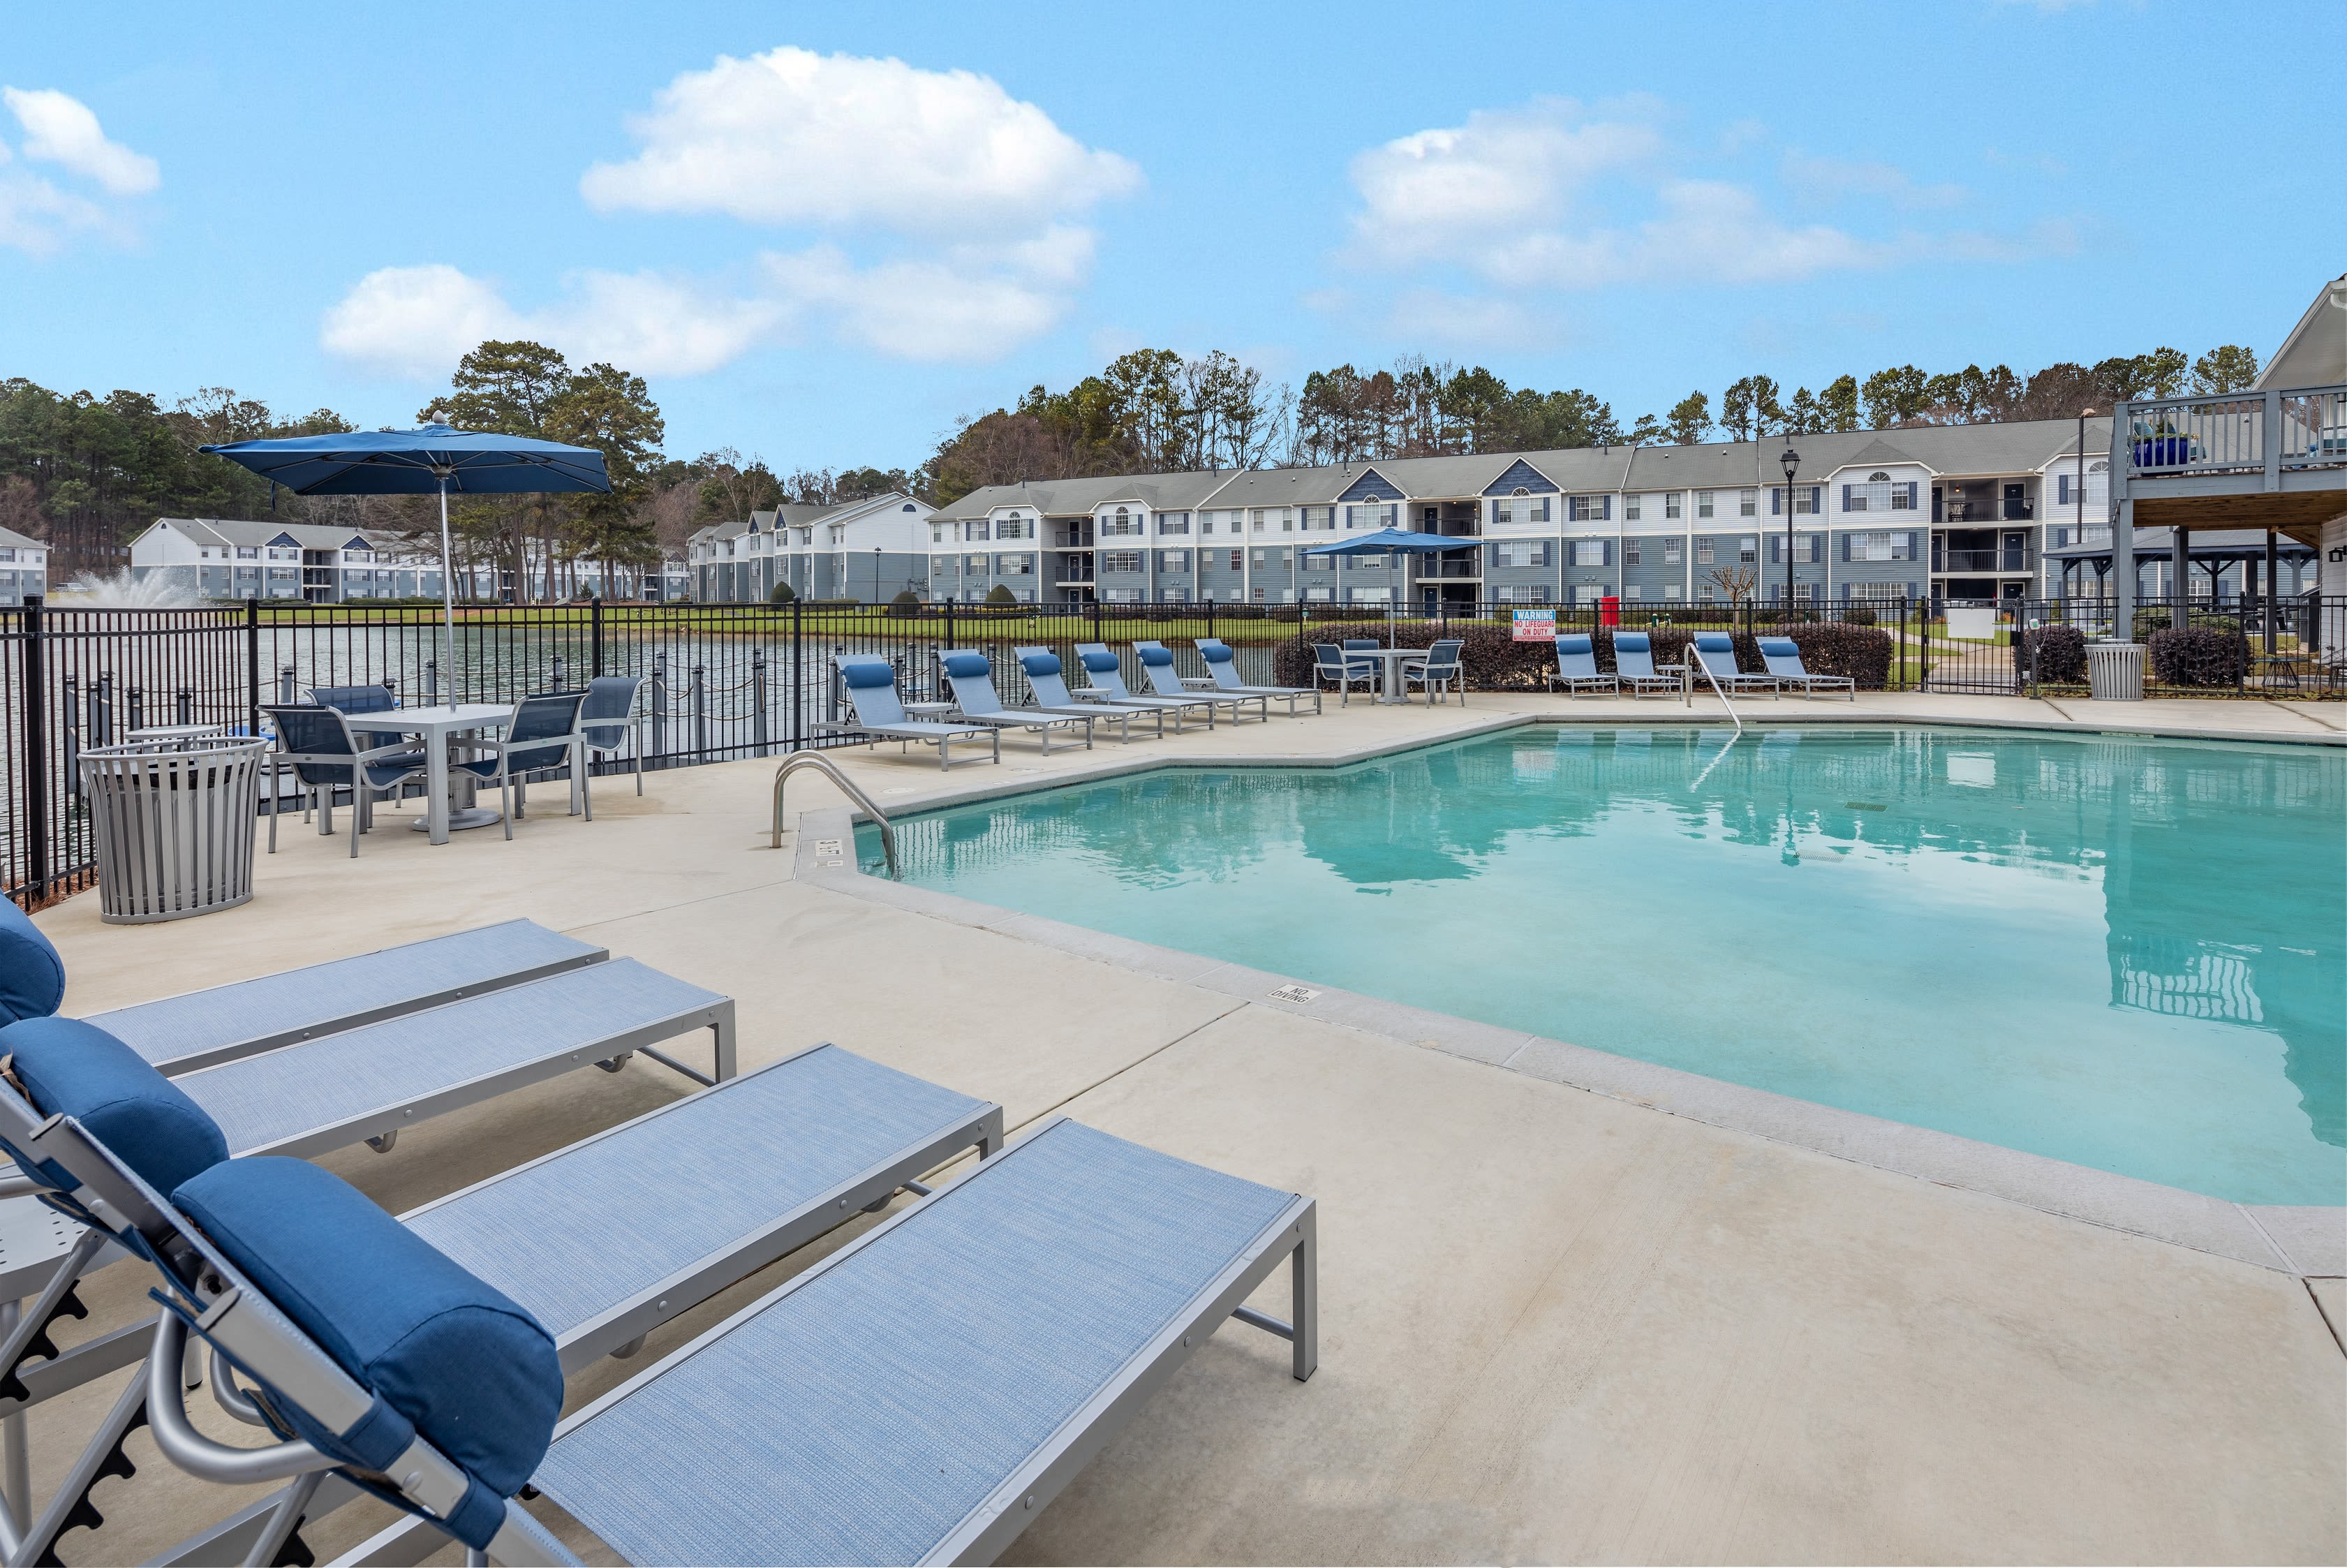 Resort inspired pool and sunning deck at The Bentley at Marietta in Marietta, GA